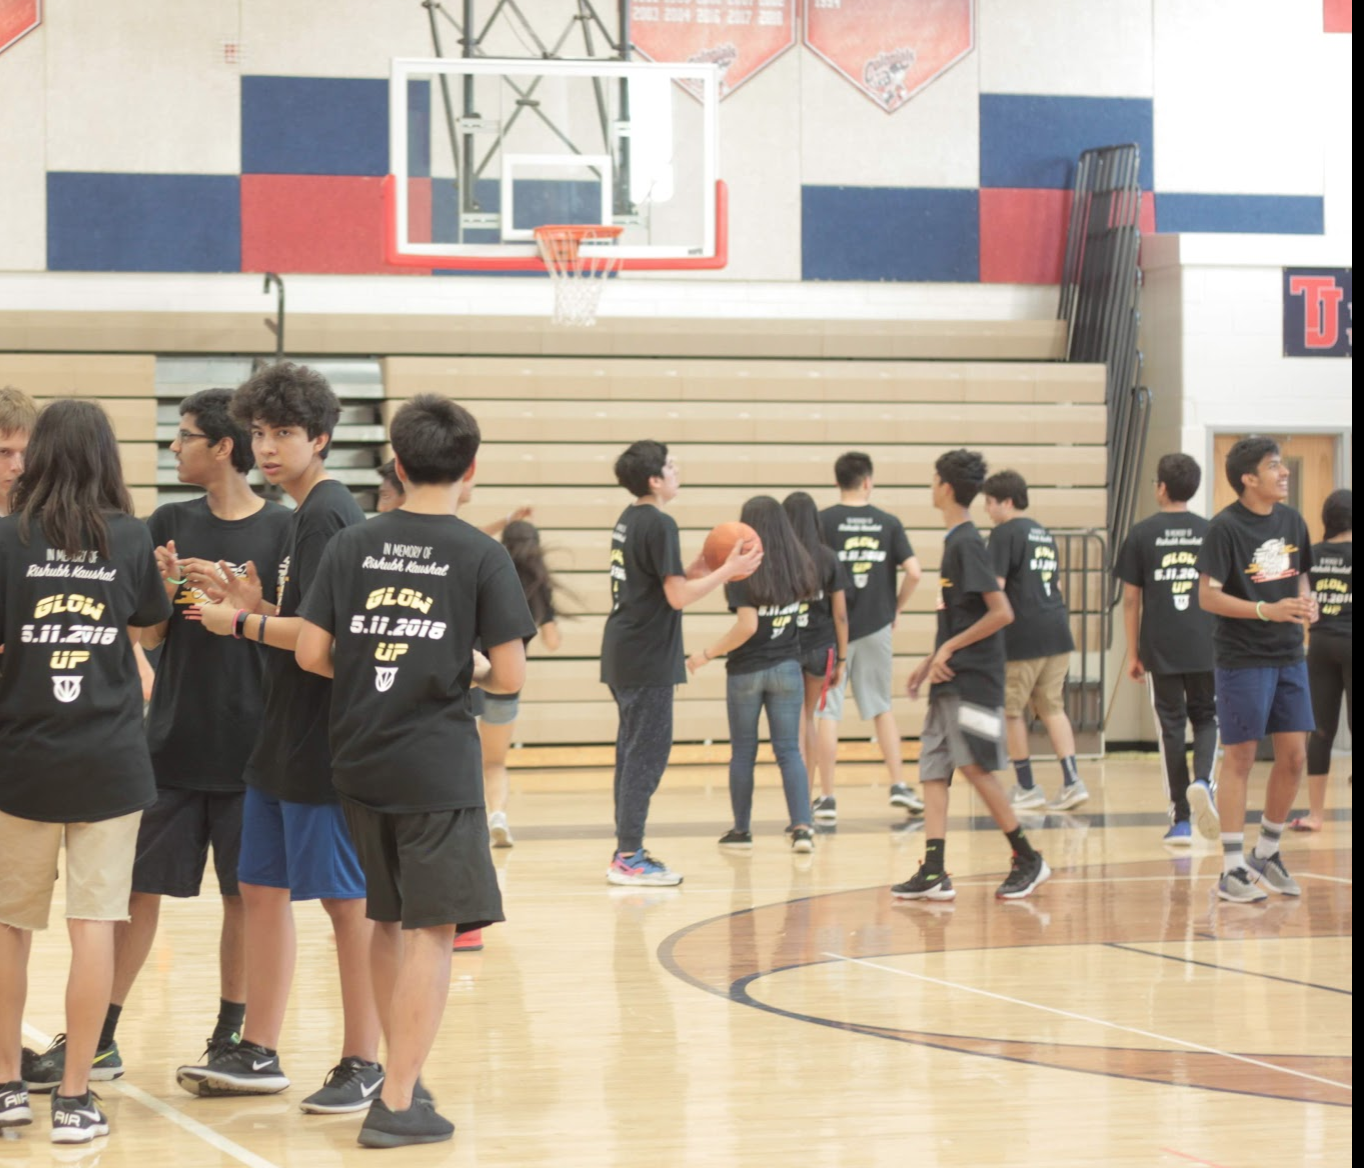 Donning their Lock-In shirts, freshmen entertain themselves in the gym before the event begins.